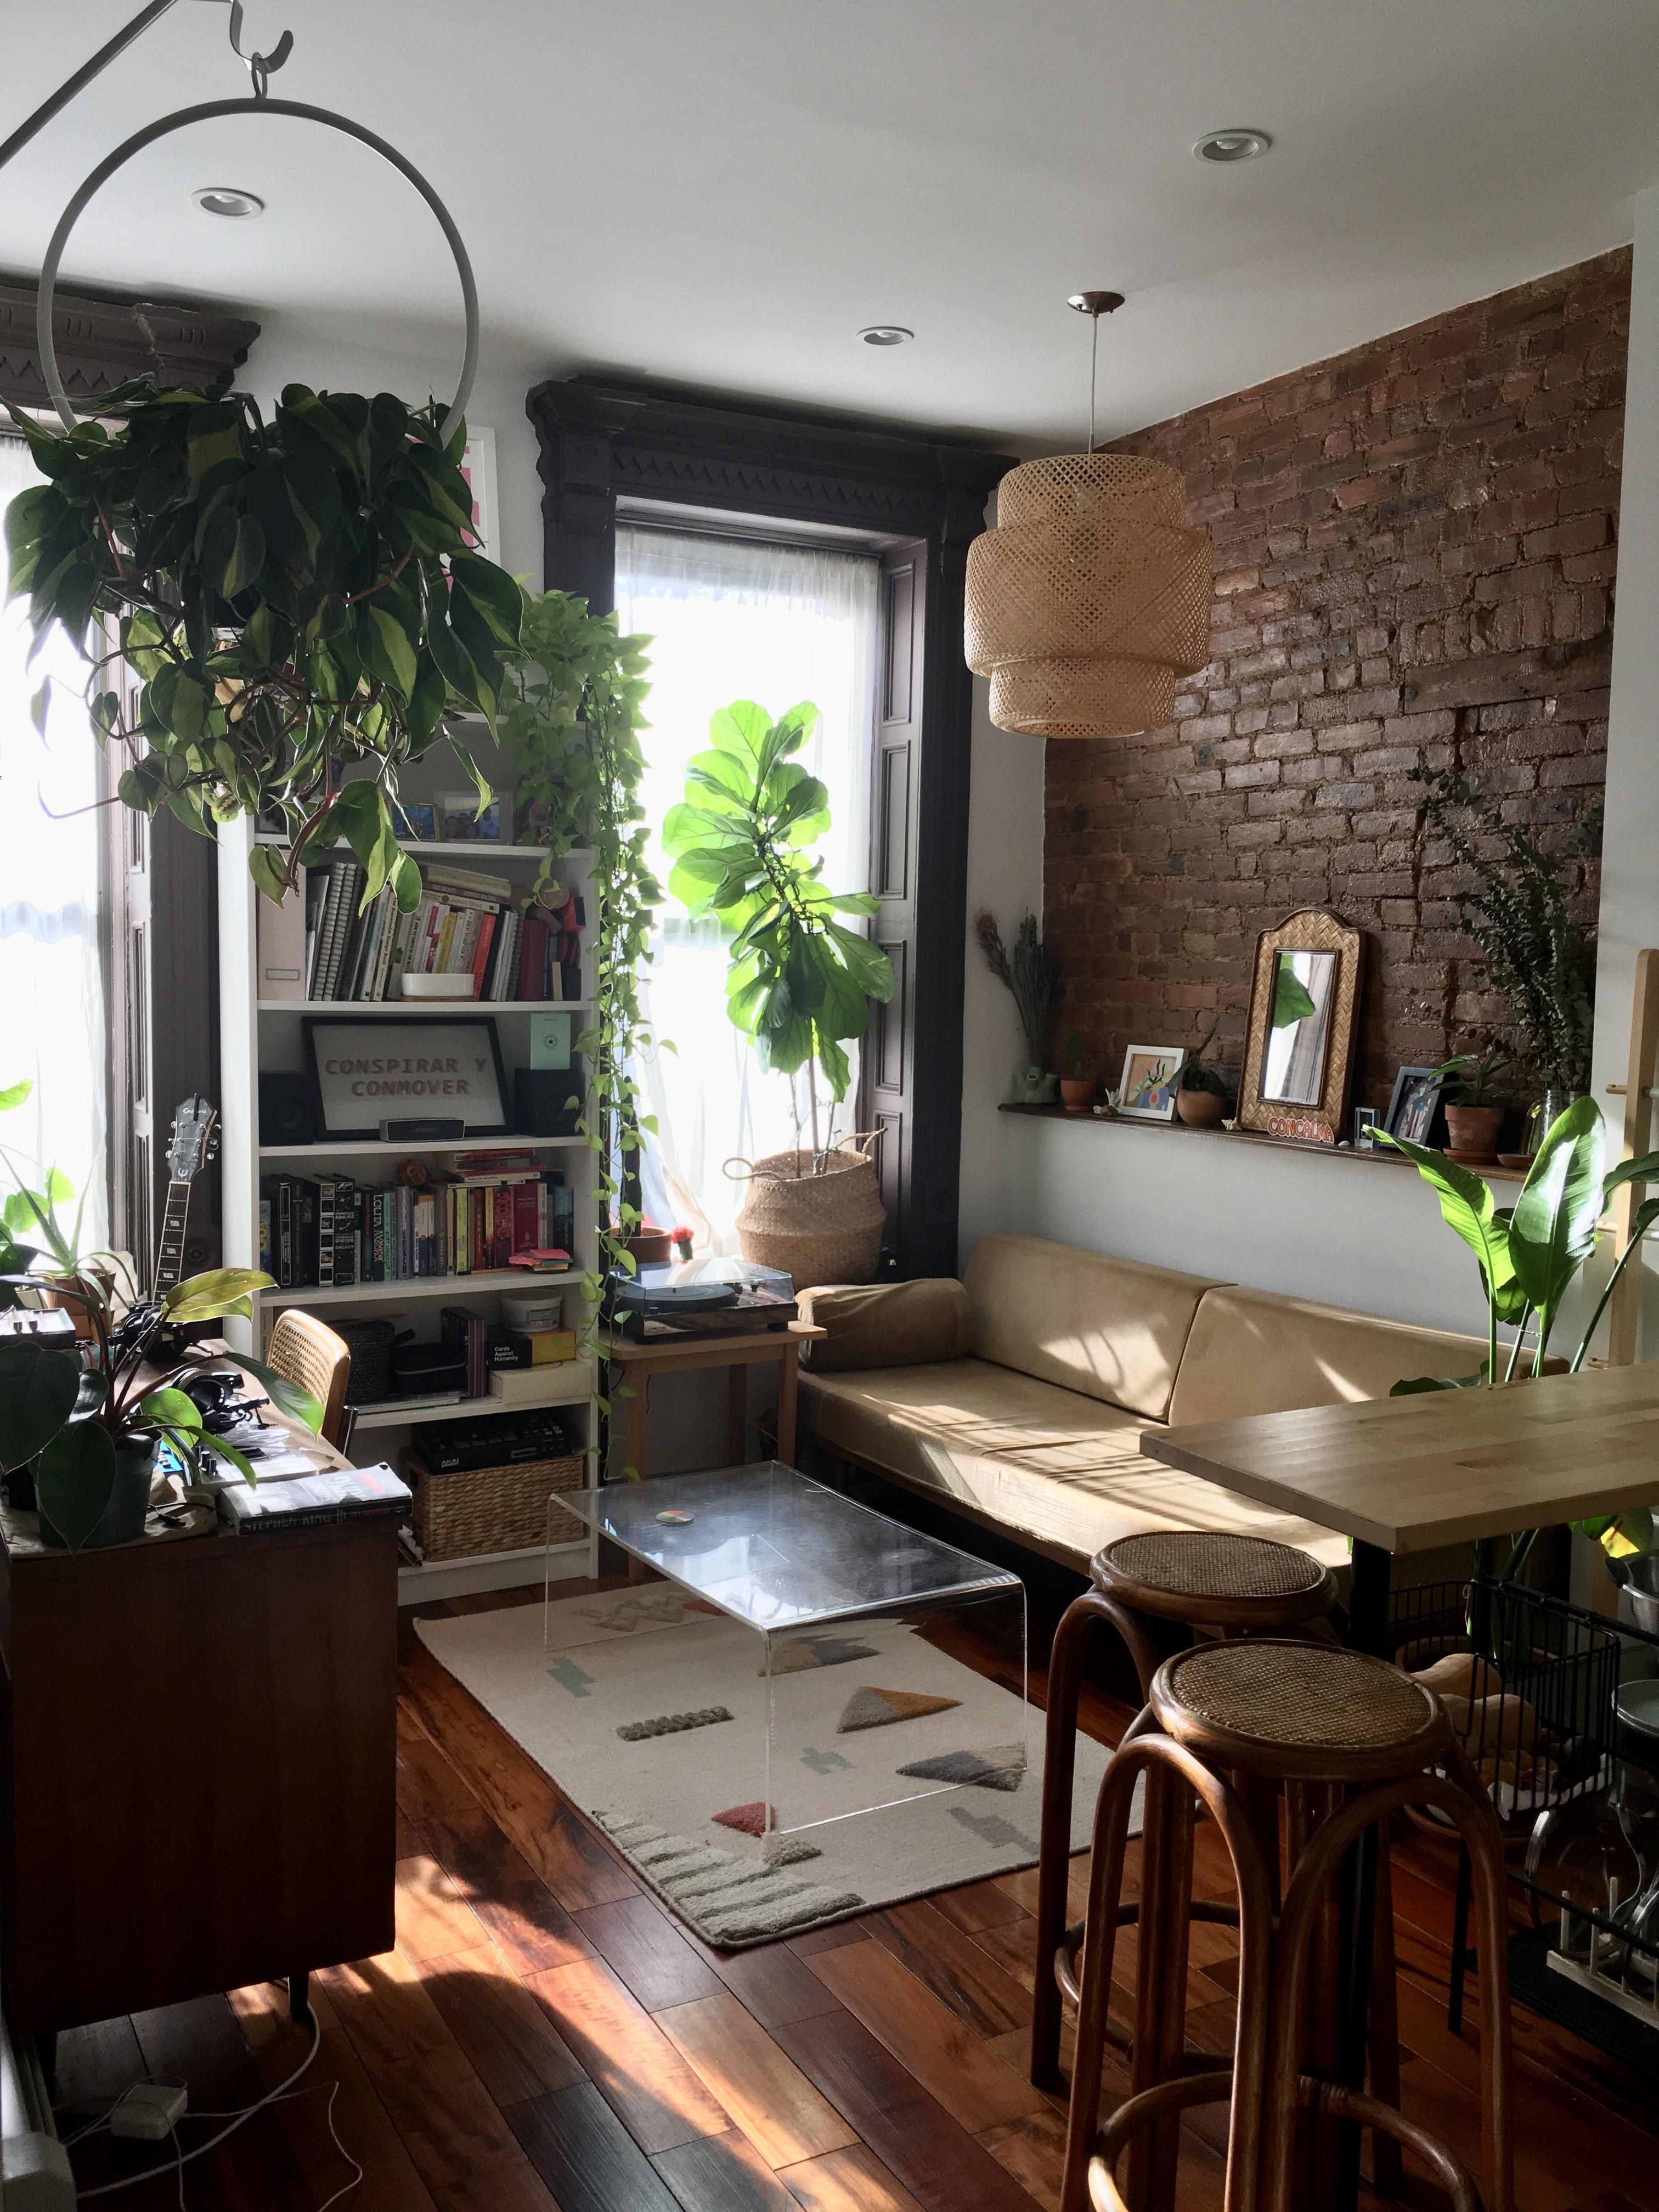 Sun Filled Living Room Brooklyn Ny Daily Home Decor And Interior Design Inspiration Small House Interior Living Room Brooklyn Small Apartment Living Room